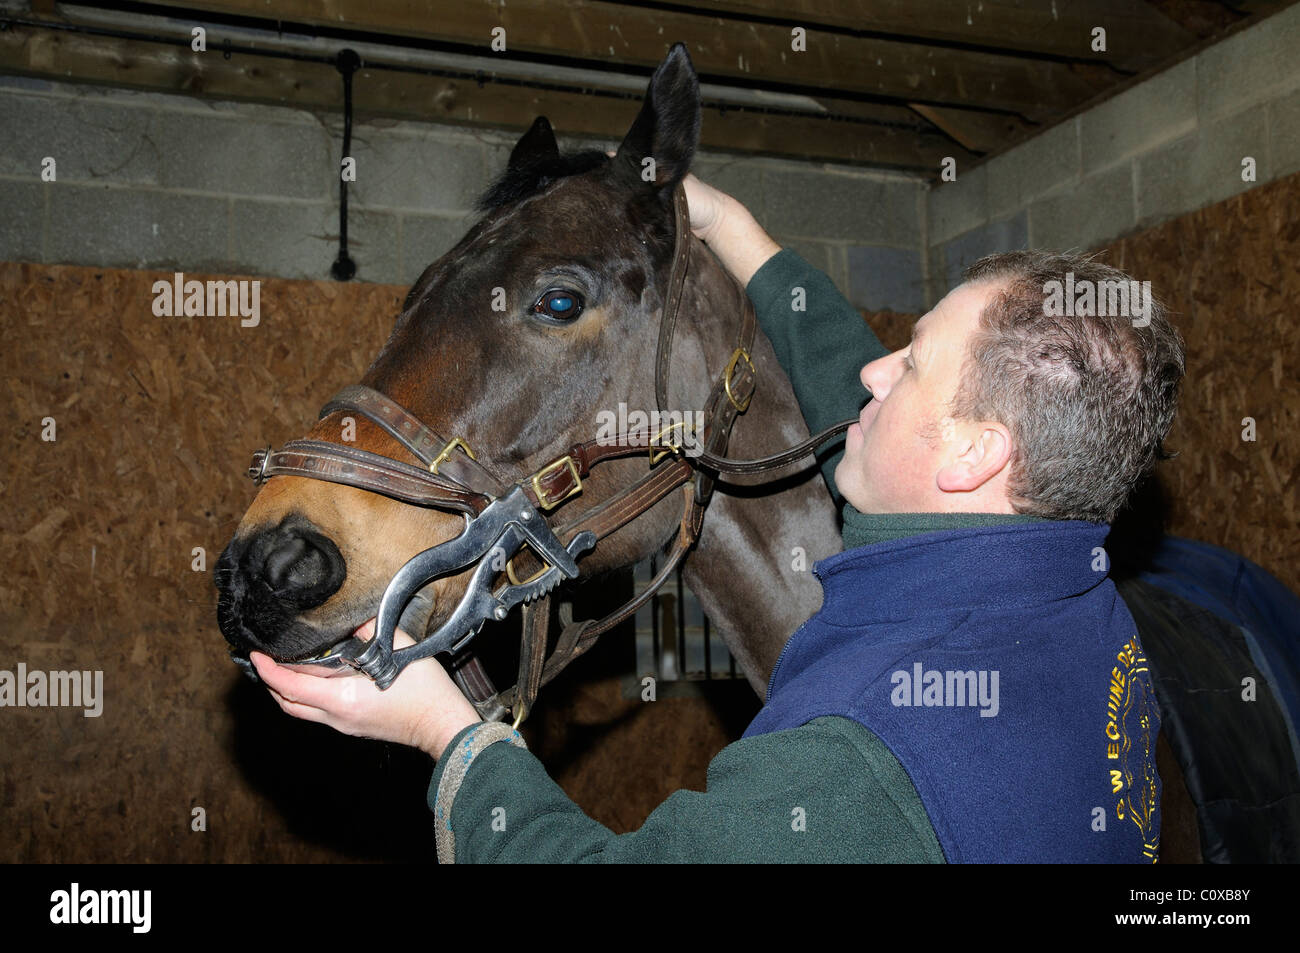 Horse dentist adjusting a stainless steel mouth speculum into the horse's mouth ready to file teeth. The mouth - Stock Image